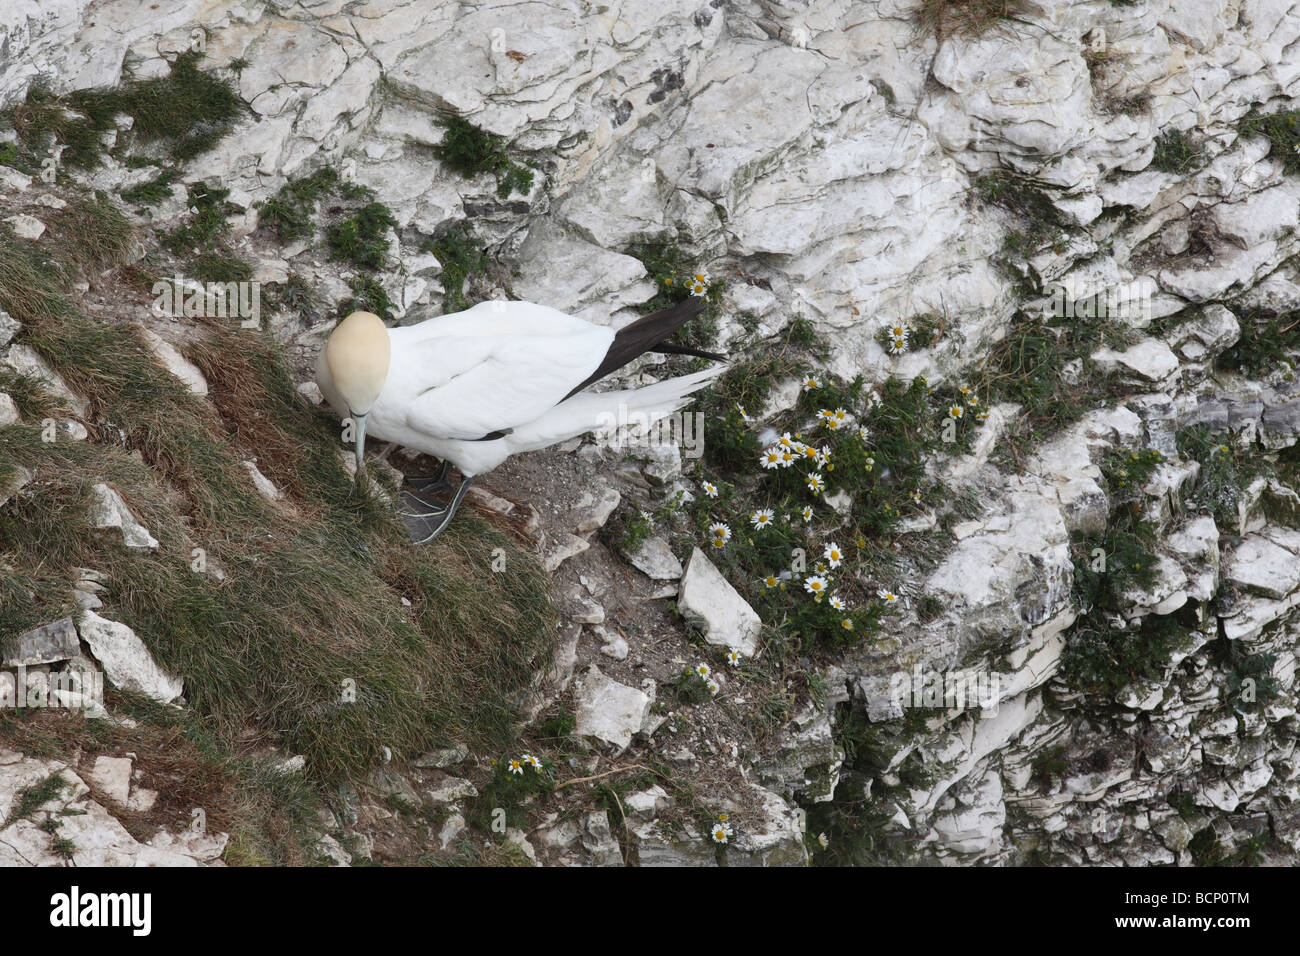 Gannet Sulu bassana collecting nest material - Stock Image